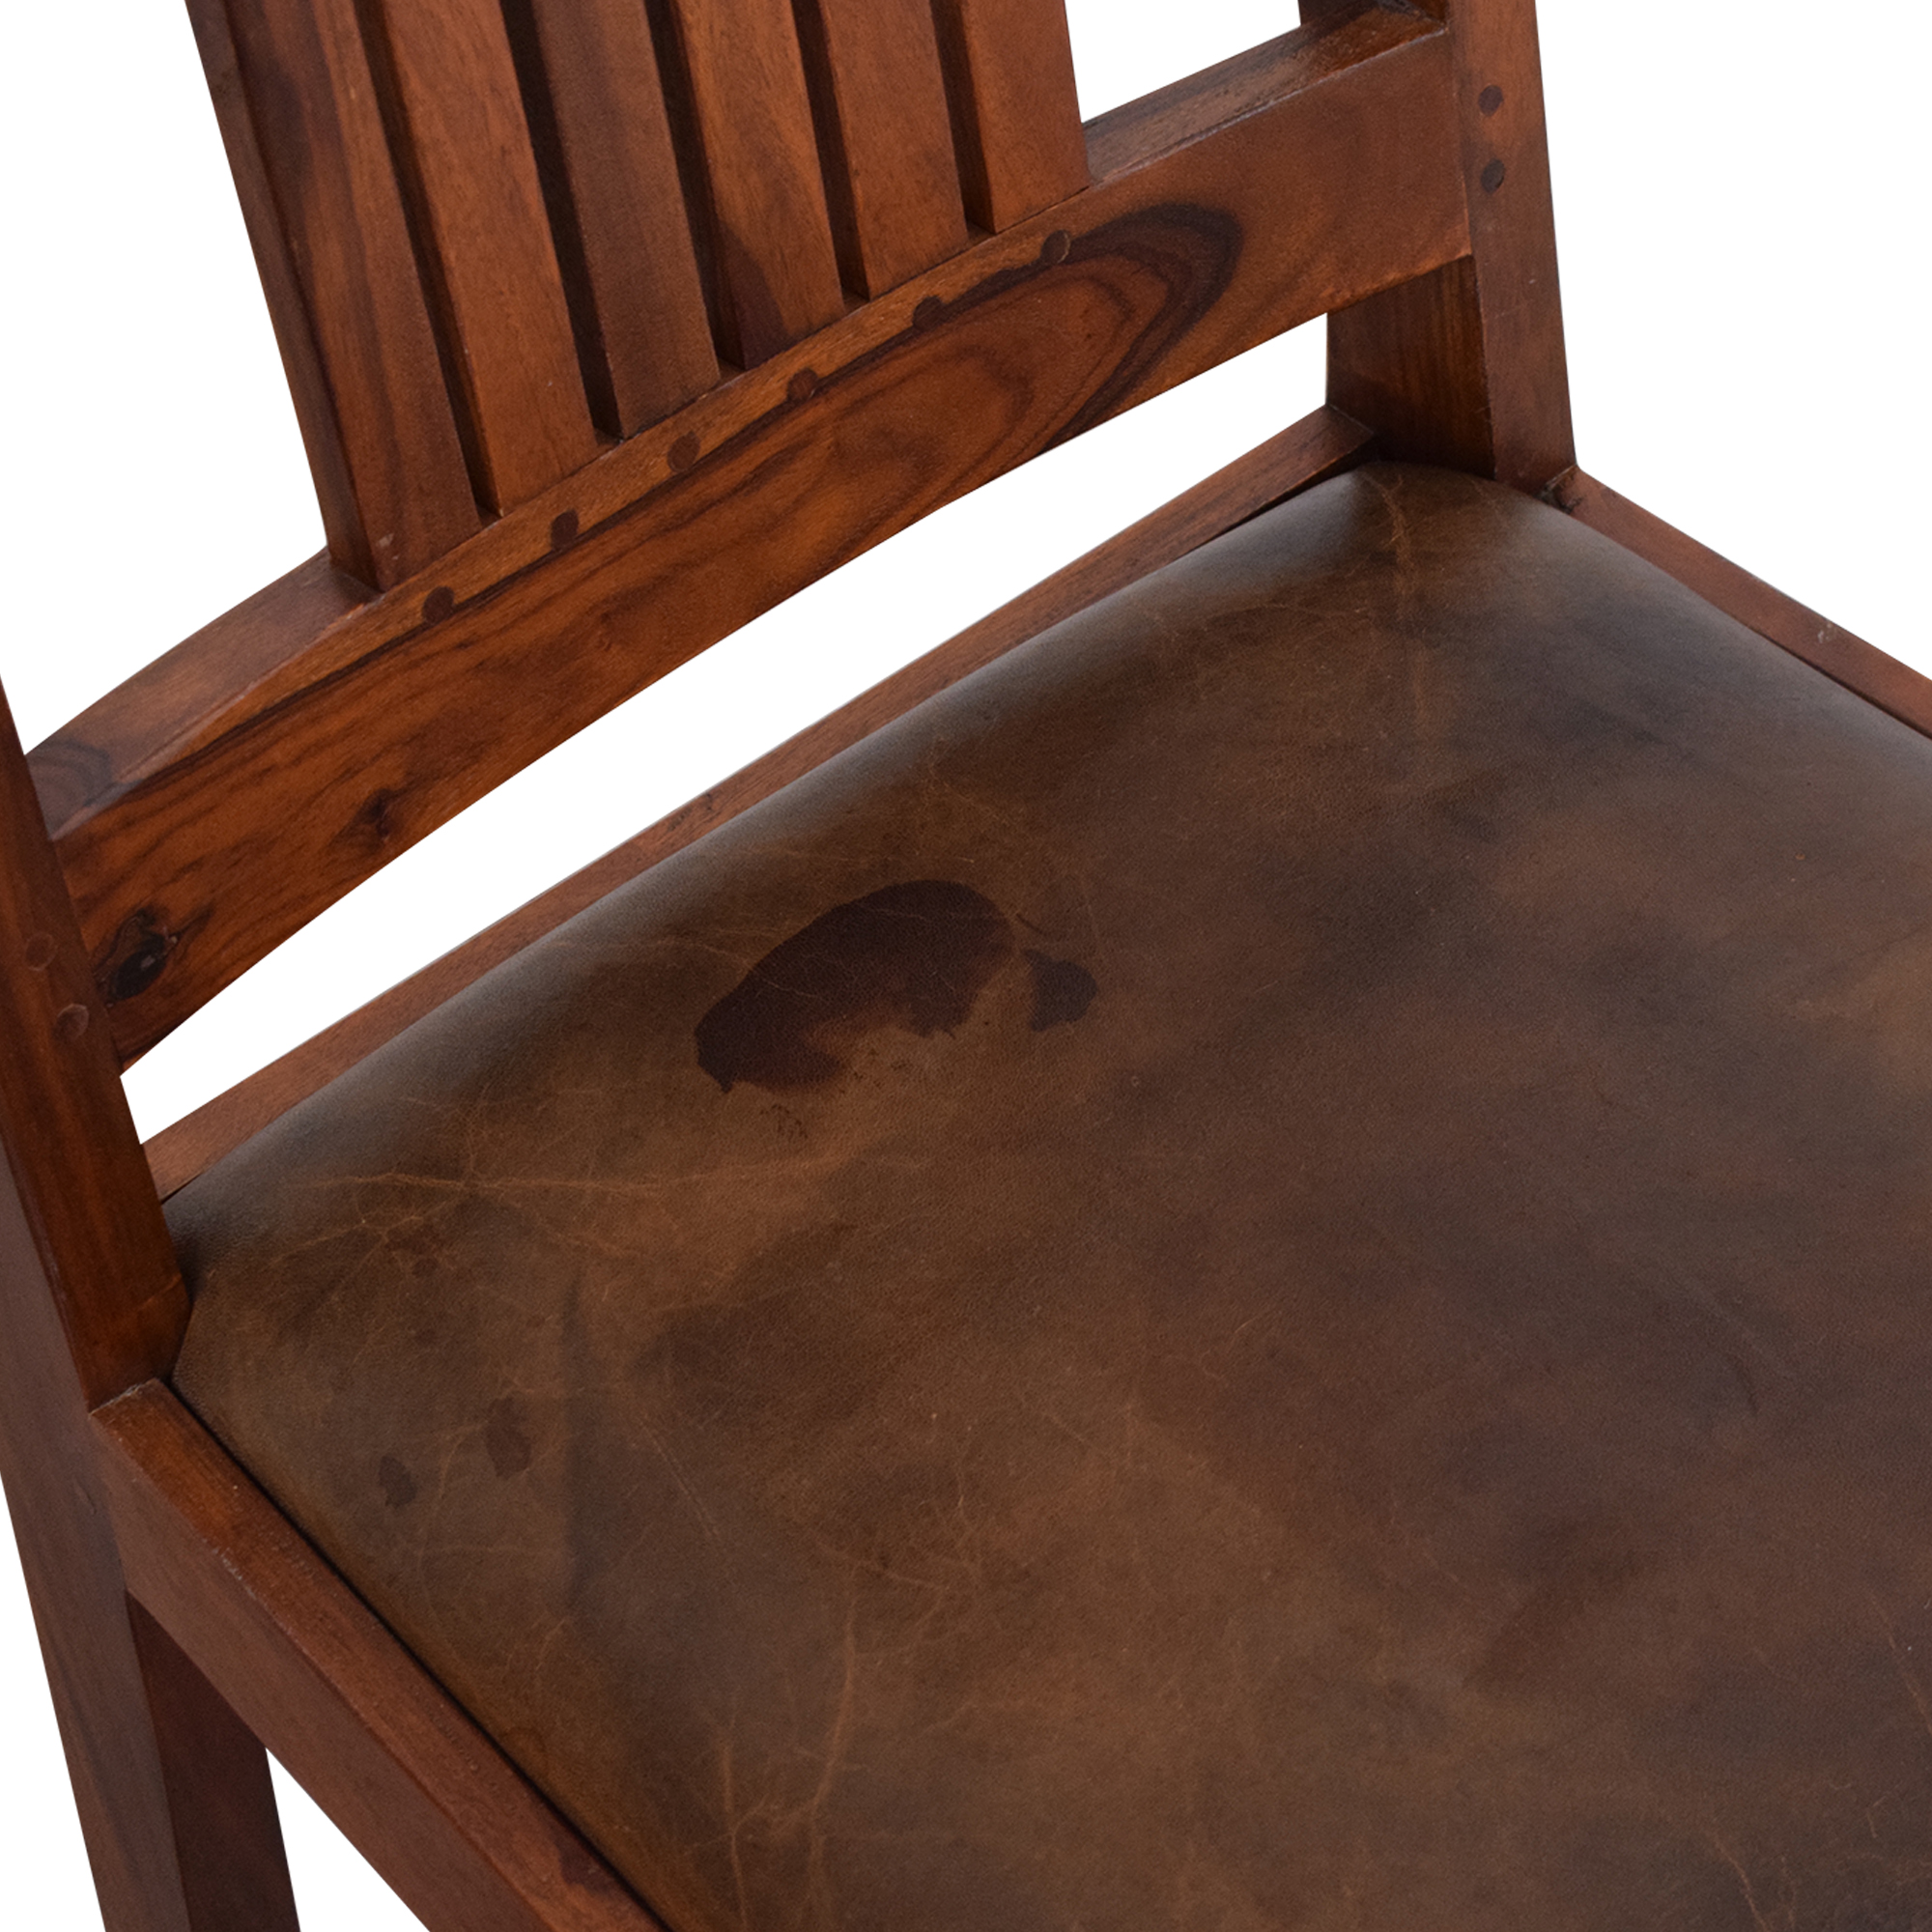 ABC Carpet & Home ABC Carpet & Home Dining Chairs for sale